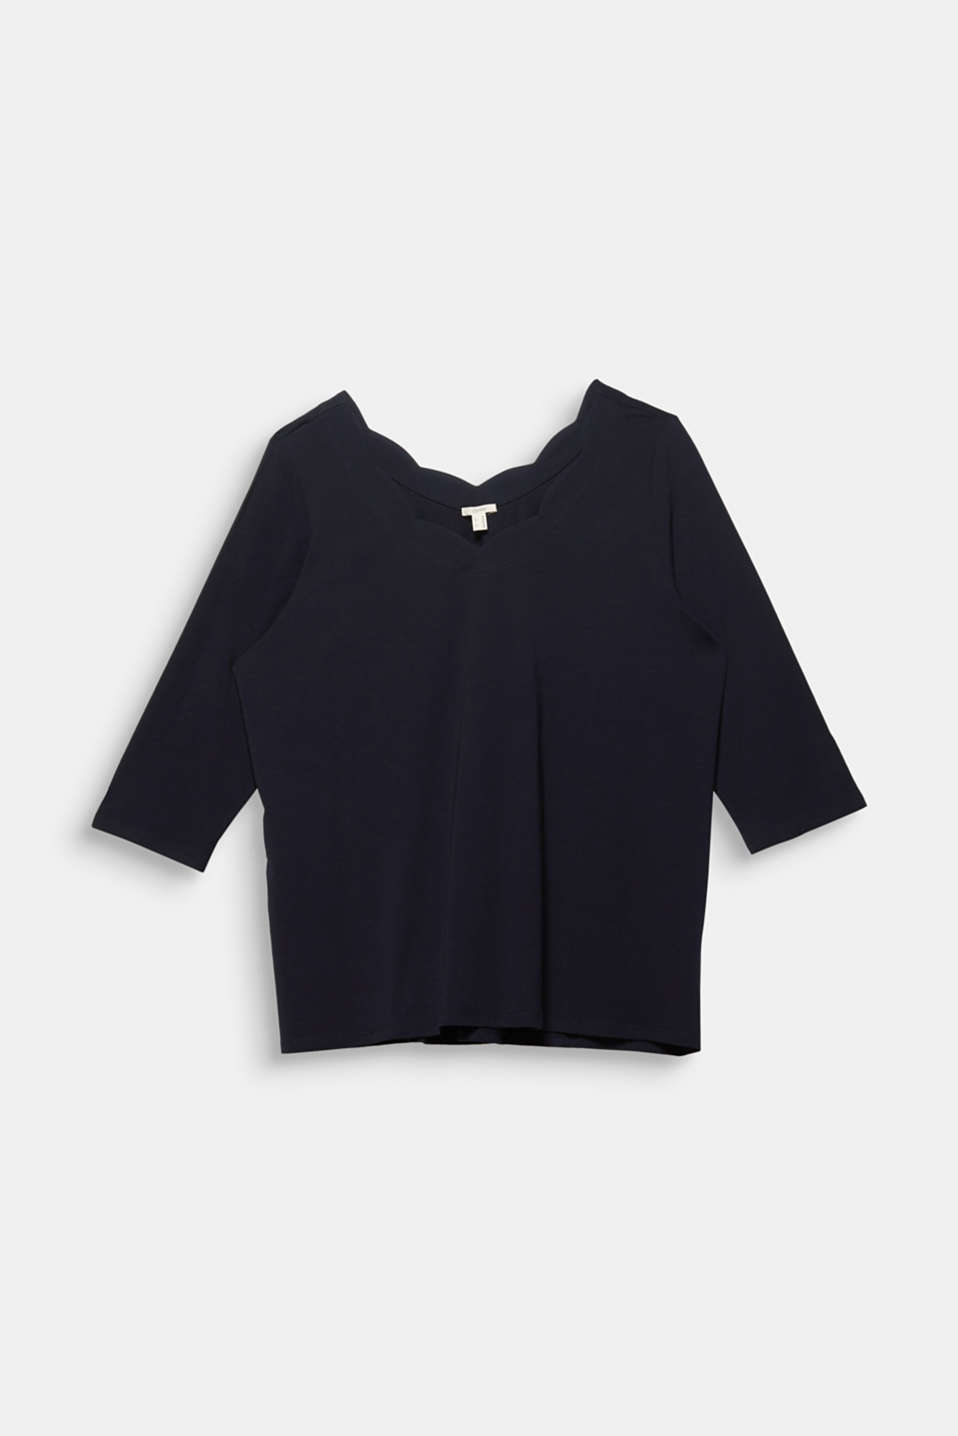 CURVY top with wavy details, BLACK, detail image number 5